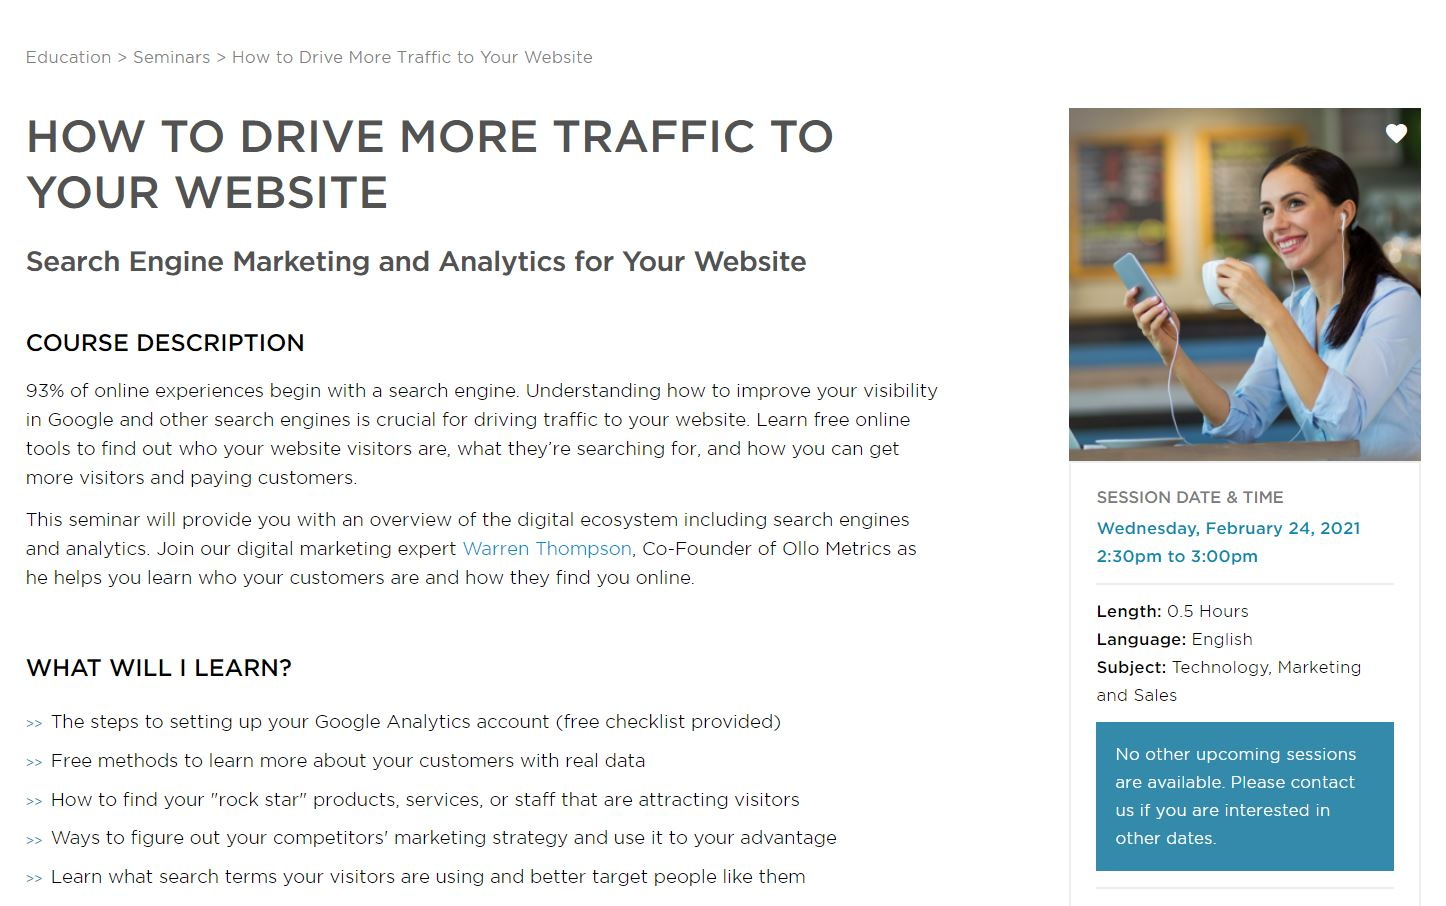 Small Business BC February 24 Webinar: How to Drive More Traffic to Your Website